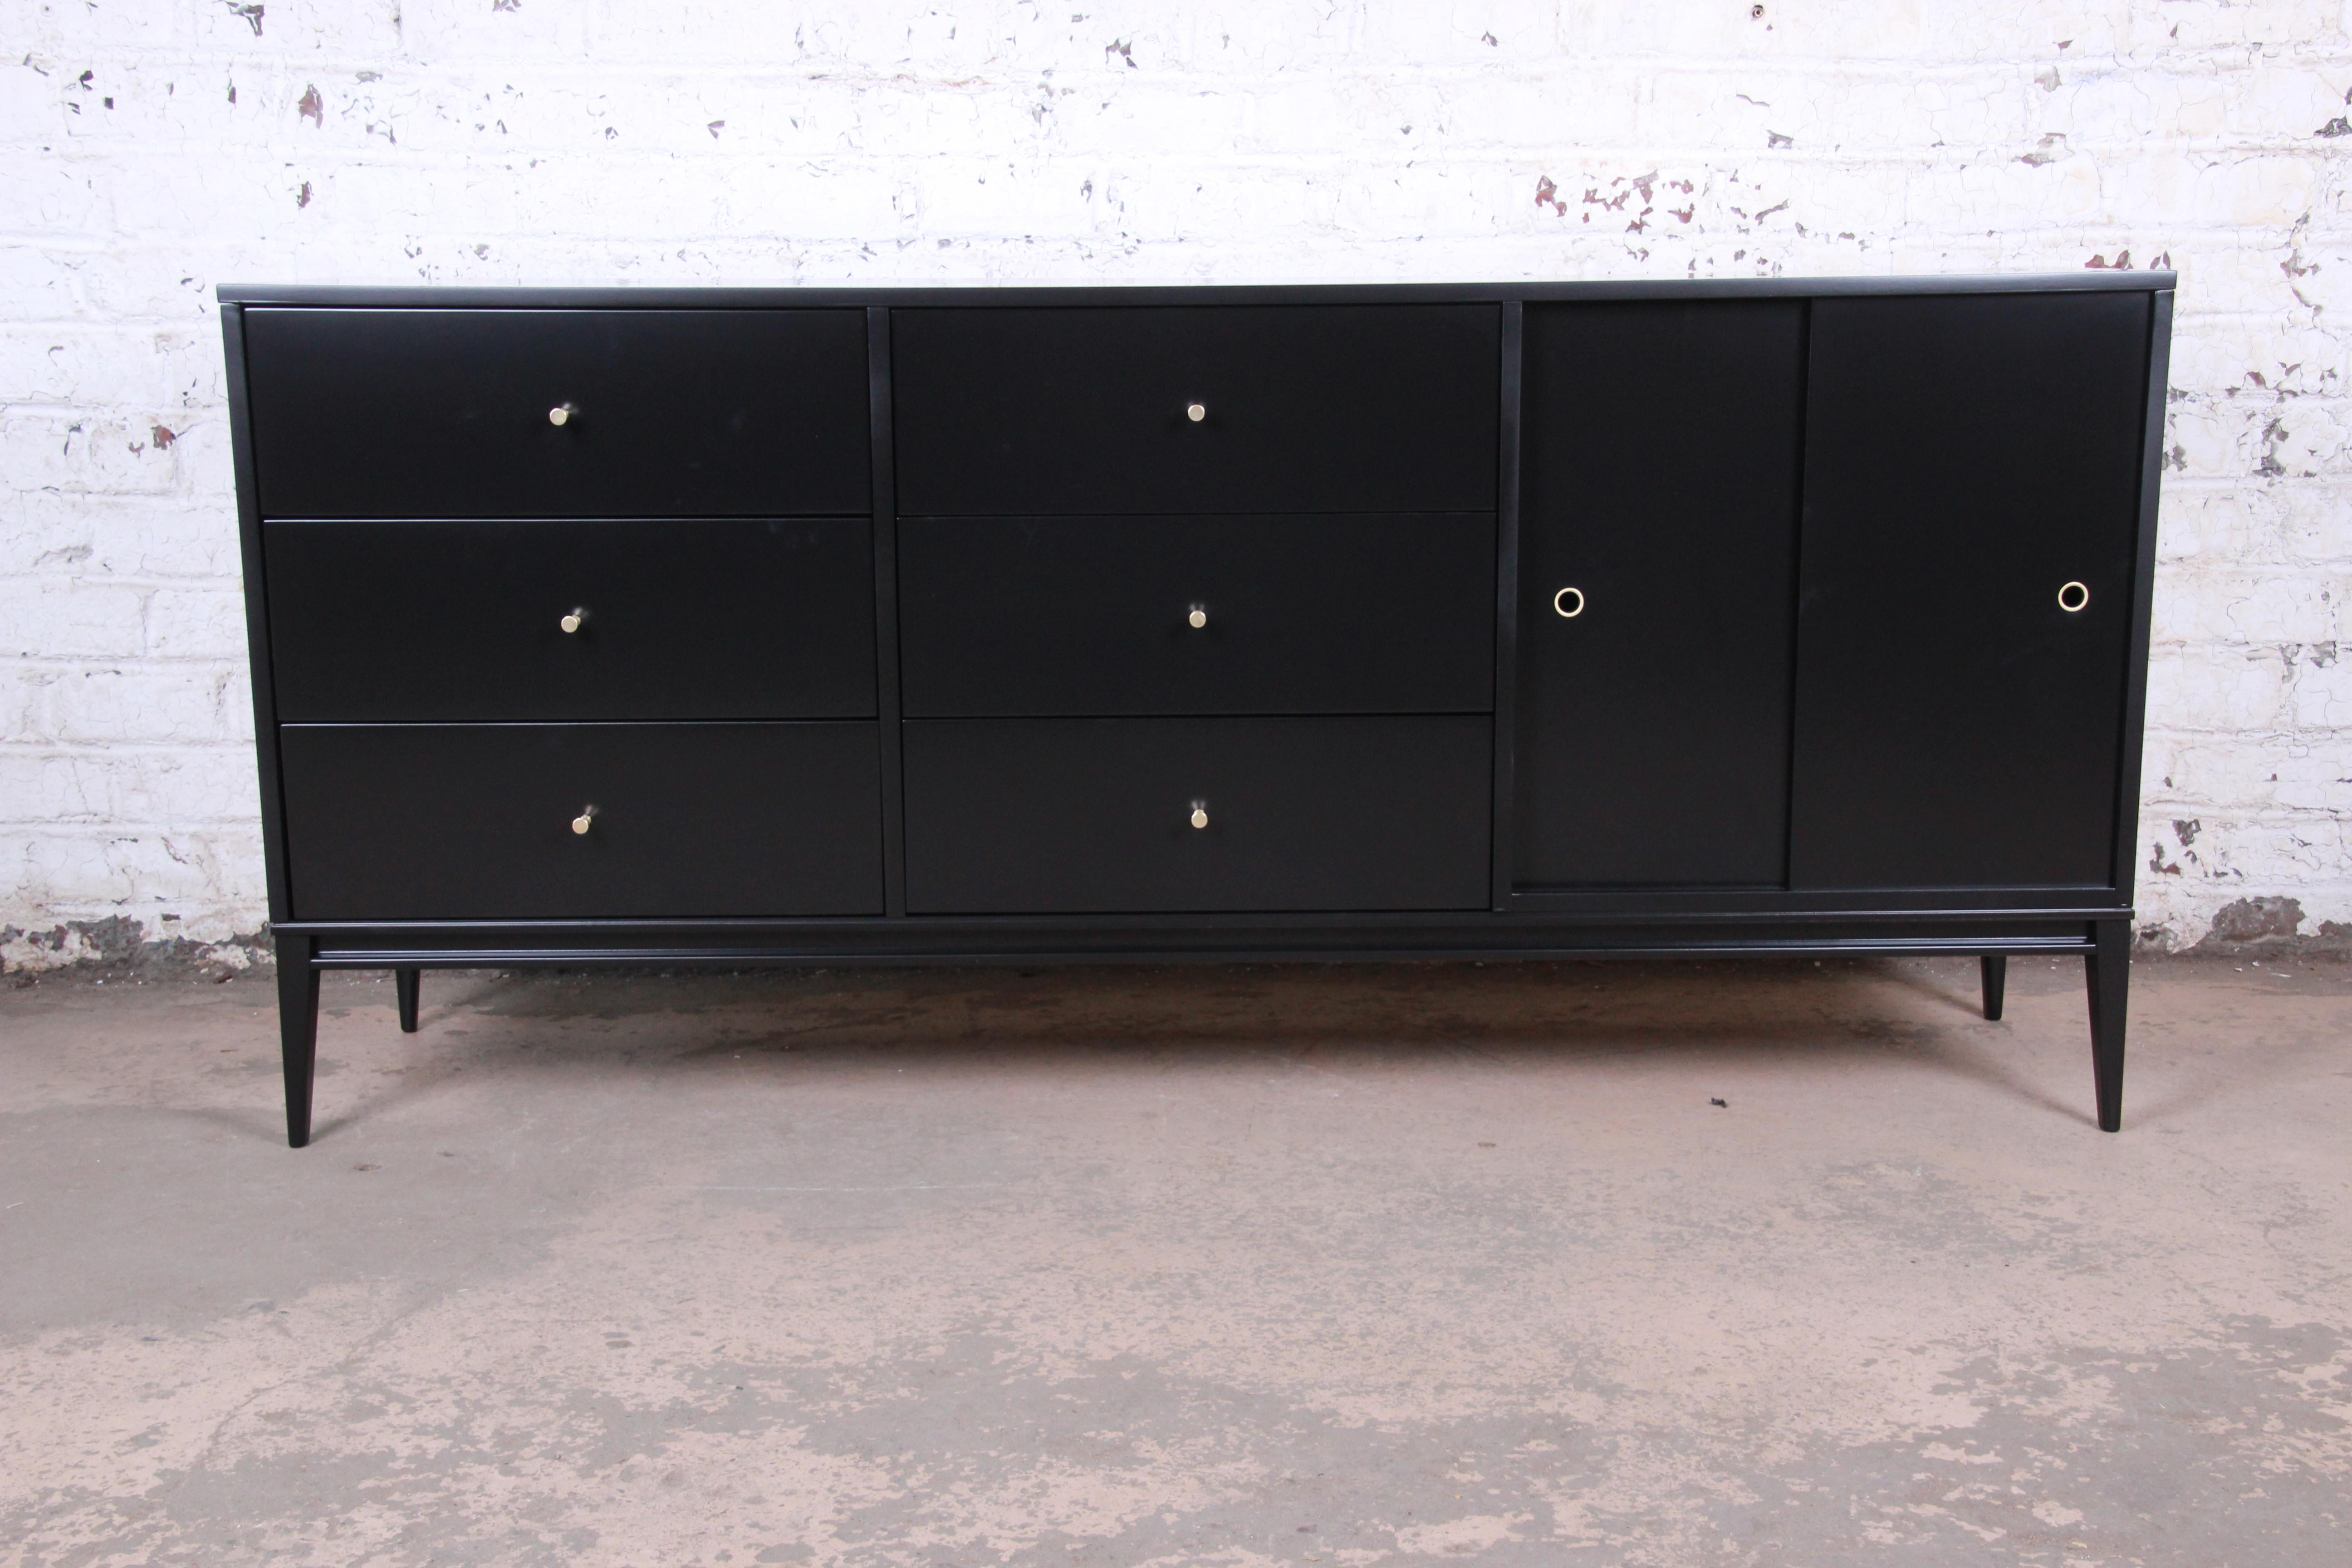 paul mccobb planner group mid century modern black lacquered credenza or long dresser newly restored